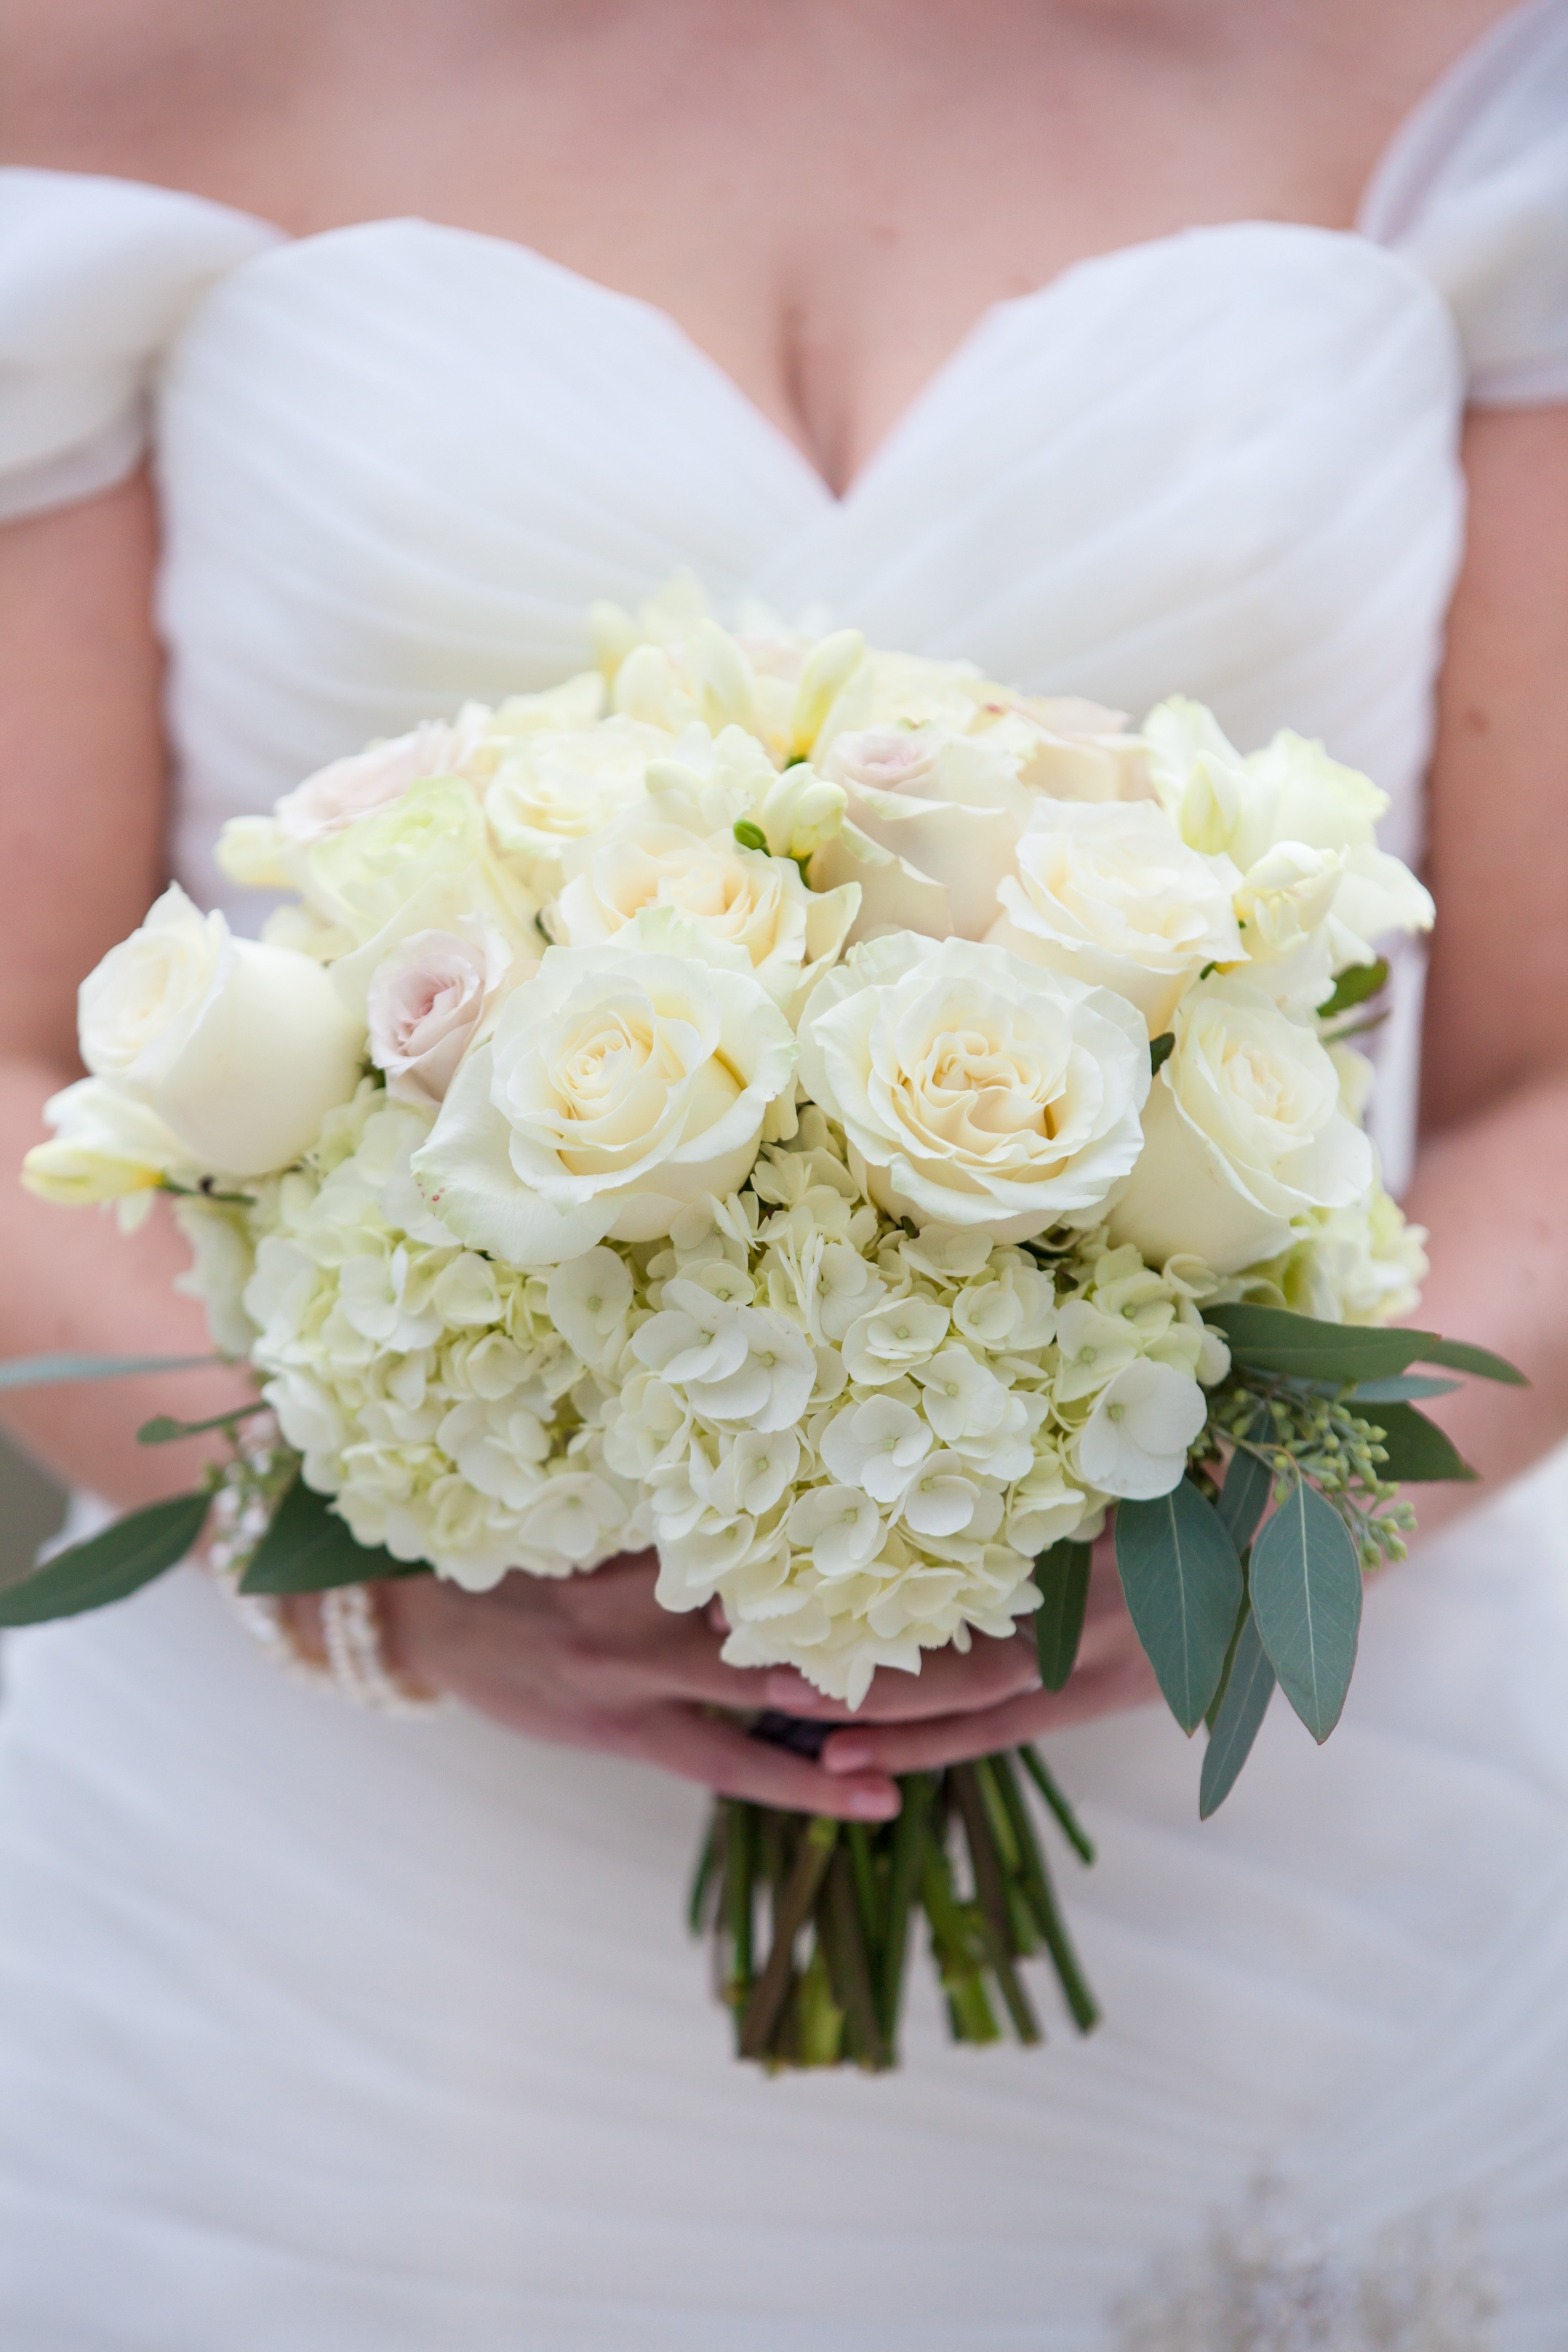 The bride's all white bouquet consisted of hydrangea and roses accented with seeded eucalyptus